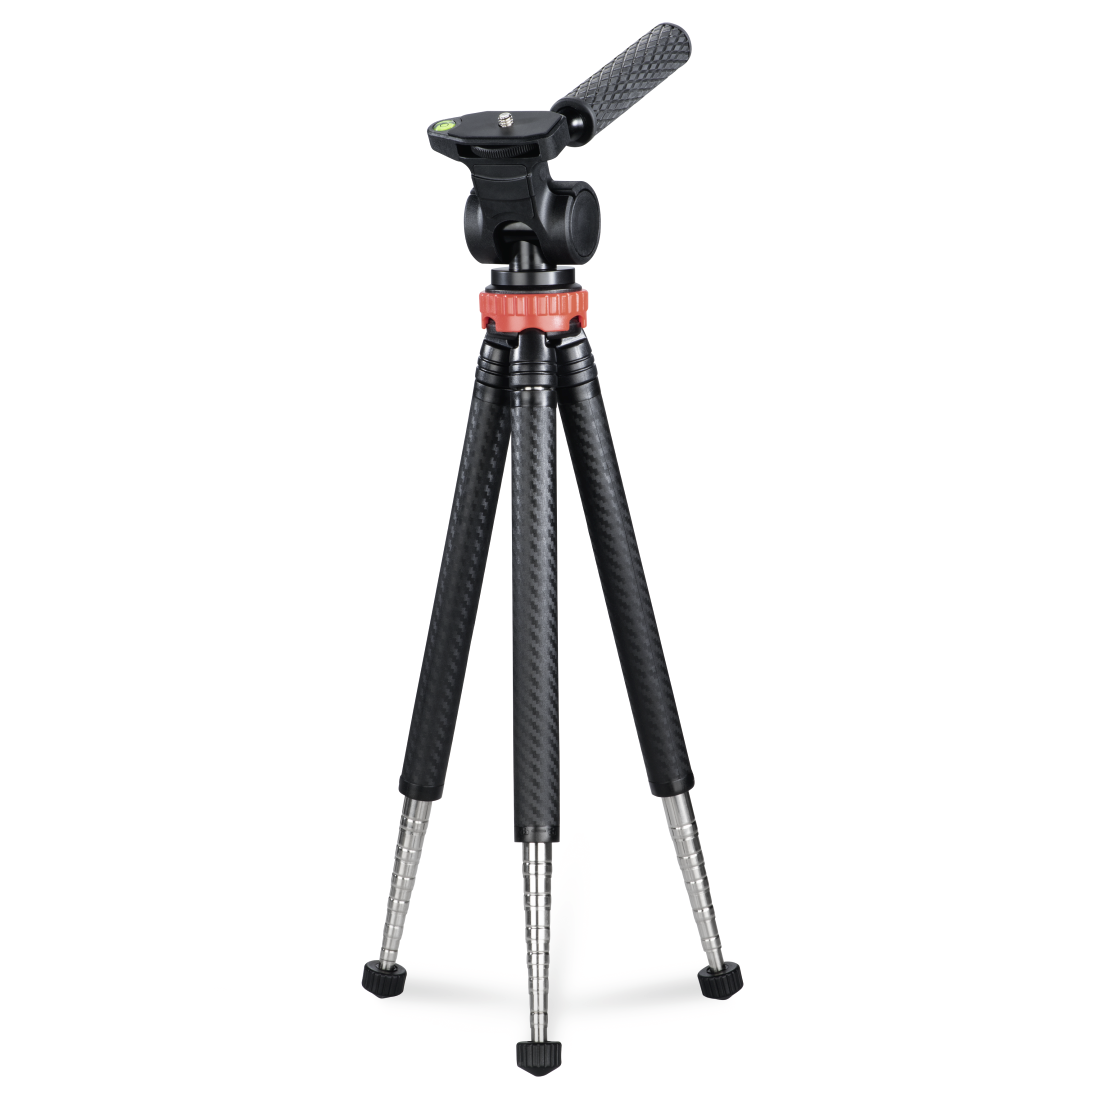 "abx High-Res Image - Hama, ""Traveller Pro"" Tripod for Smartphones, GoPros, Photo Cameras, 106 - 2D"